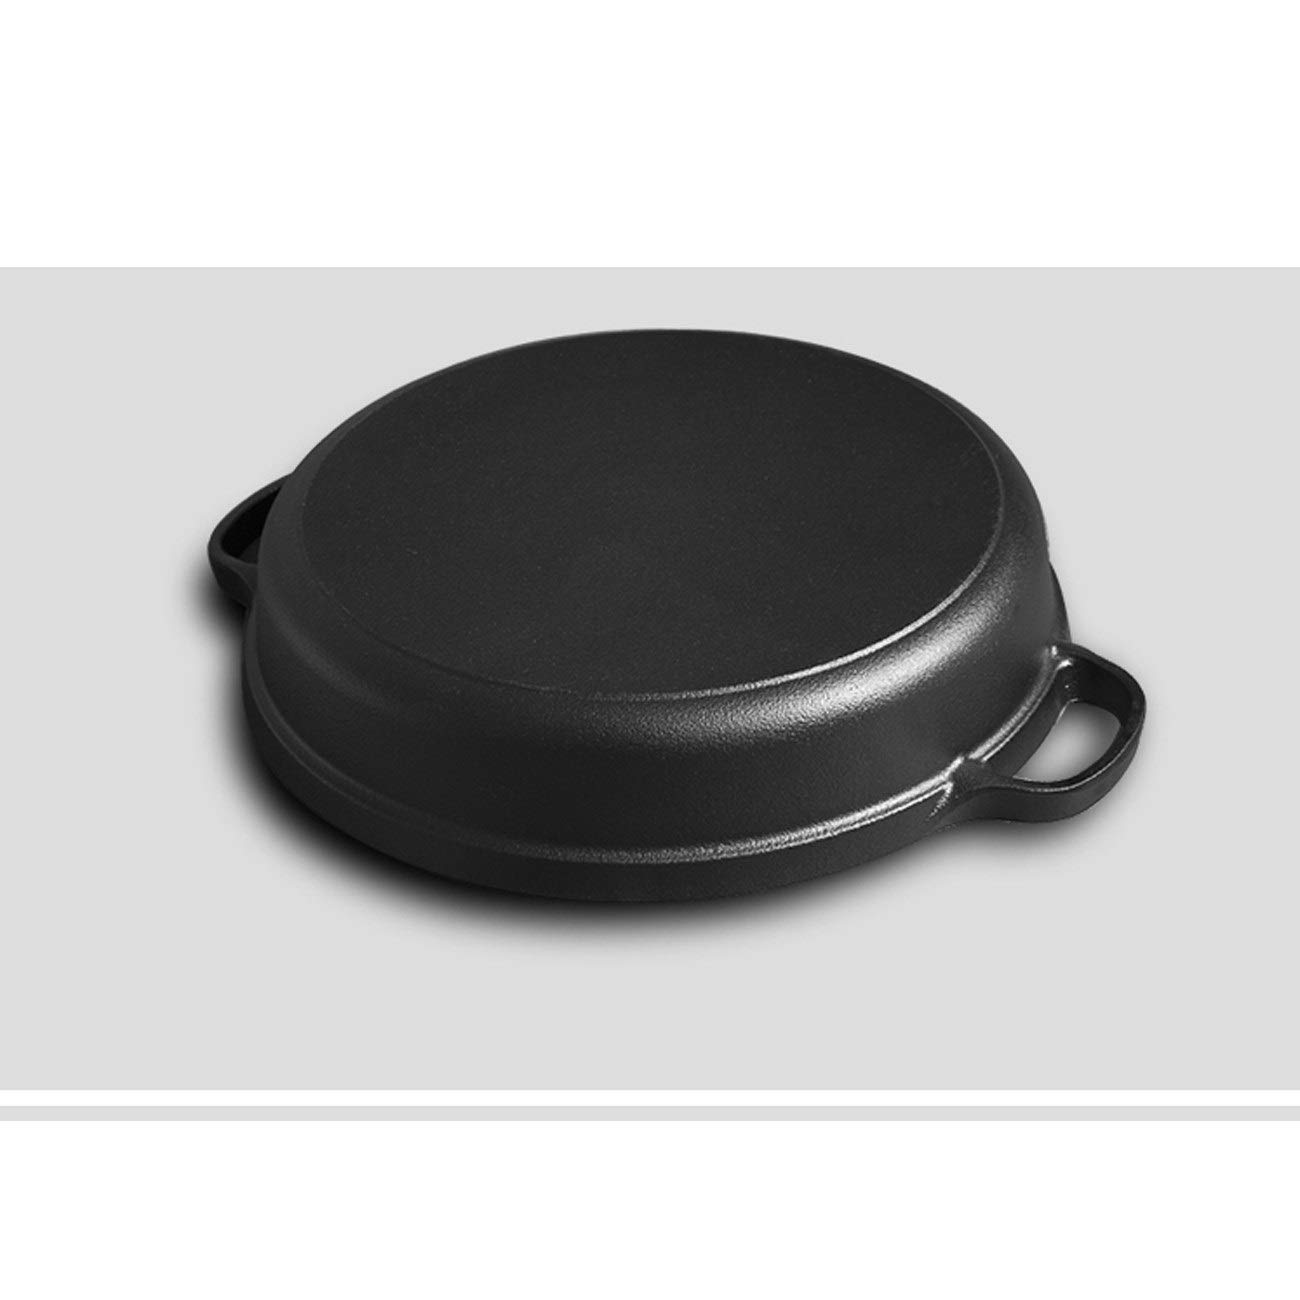 TONGBOSHI Double ear pan cast iron frying pan thick pancake pot no coating thickening cast iron pot non-stick household gas universal product (Color : Black, Size : 25cm) by TONGBOSHI (Image #3)